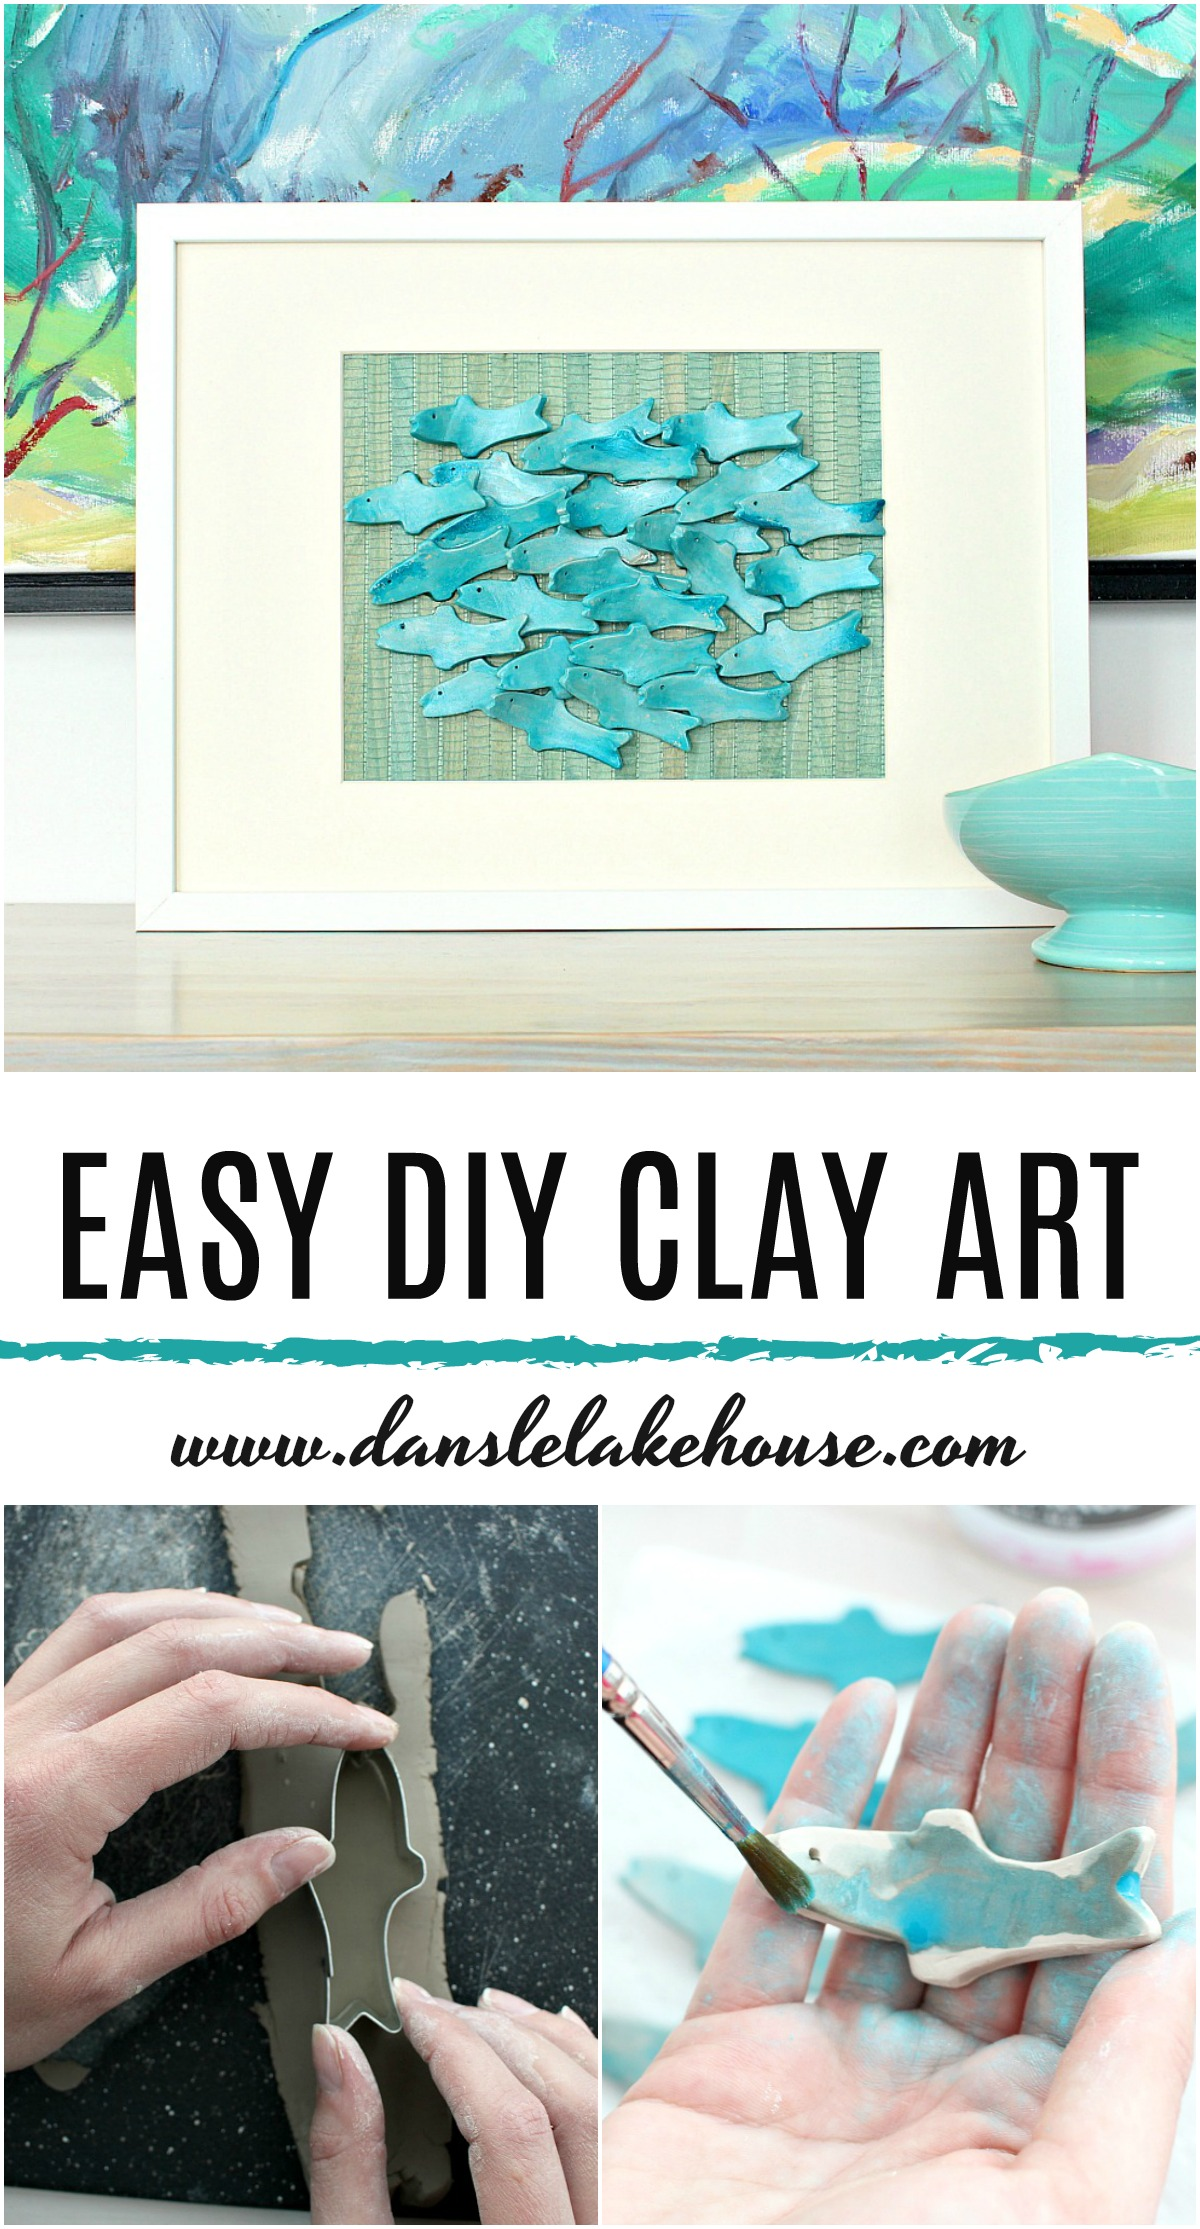 Easy DIY Clay Art. Cute Air Dry Clay Craft Project Idea: Sculptural 3D Fish Art with a Modern Coastal Style. #diyart #airdryclay #diyclay #clay #fish #moderncoastal